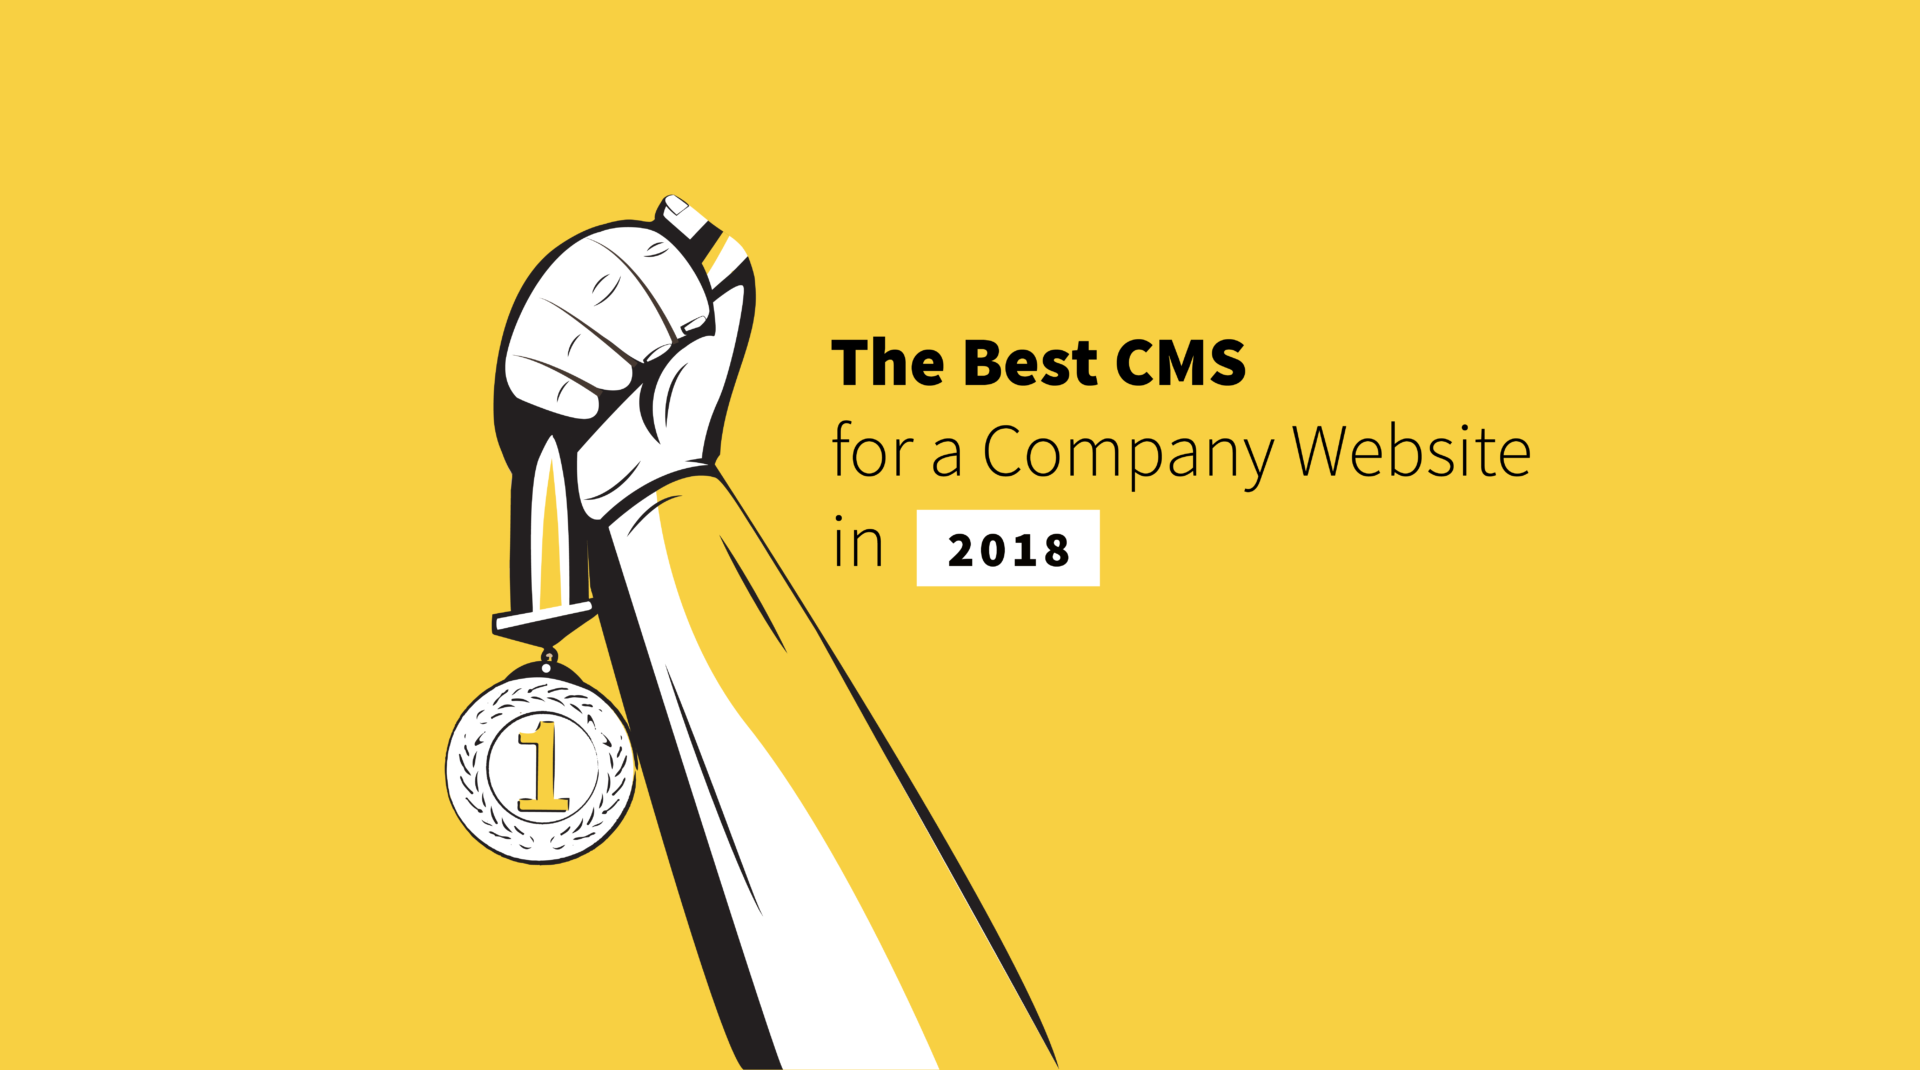 The Best CMS for a Company Website in 2018